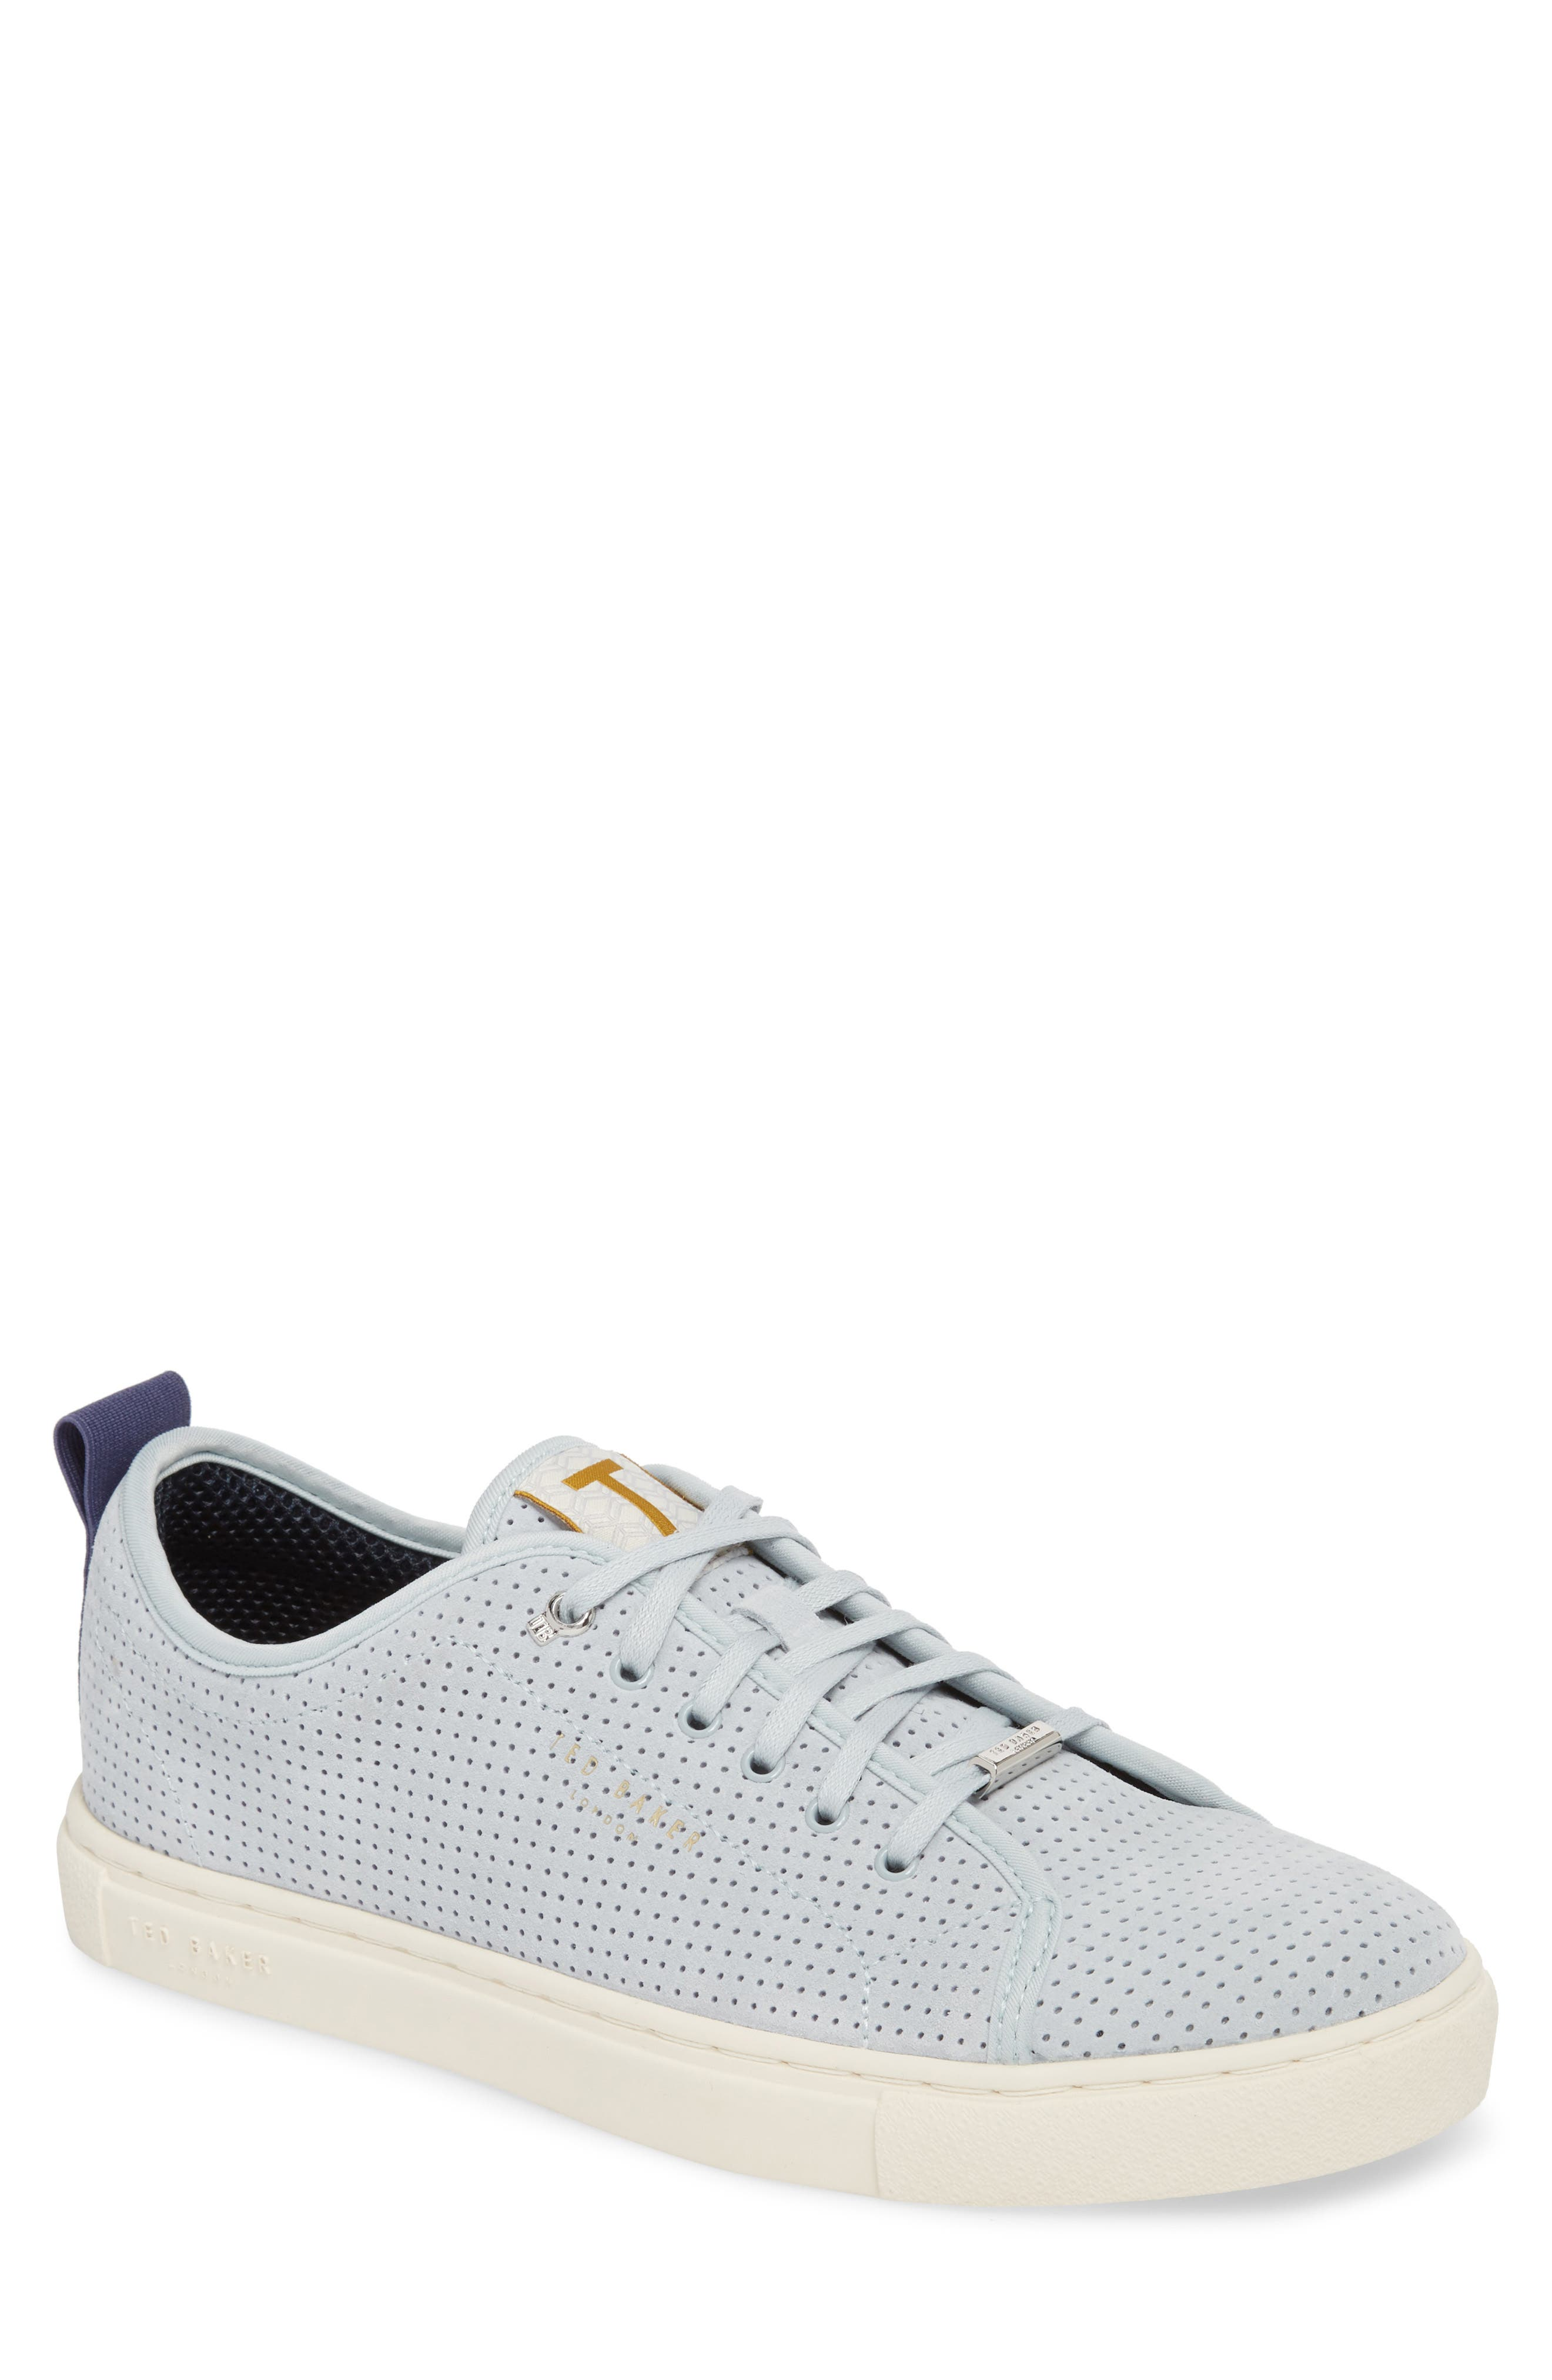 Kaliix Perforated Low Top Sneaker,                         Main,                         color, LIGHT BLUE SUEDE